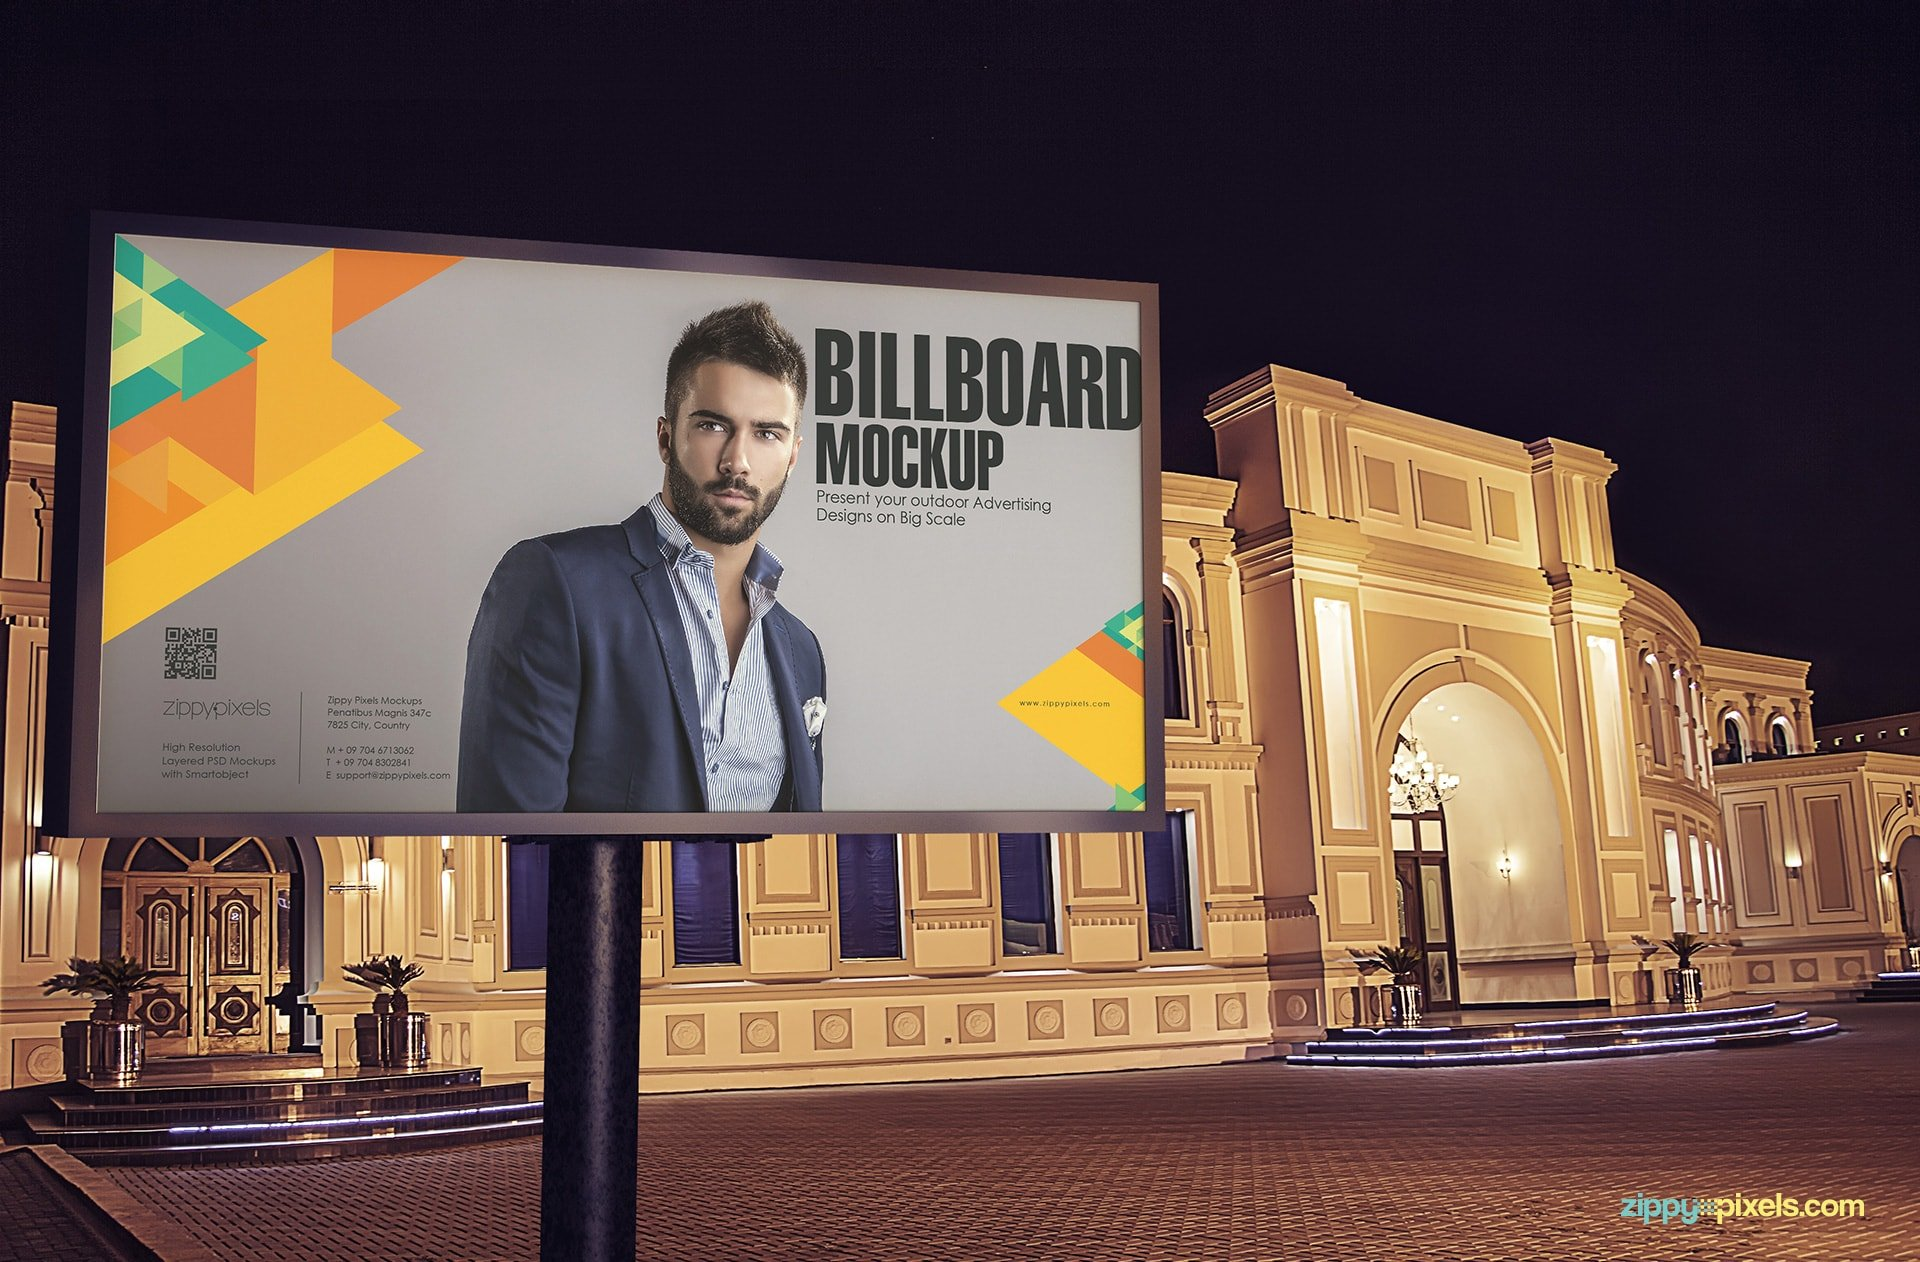 Medium size billboard with a beautiful building in the background